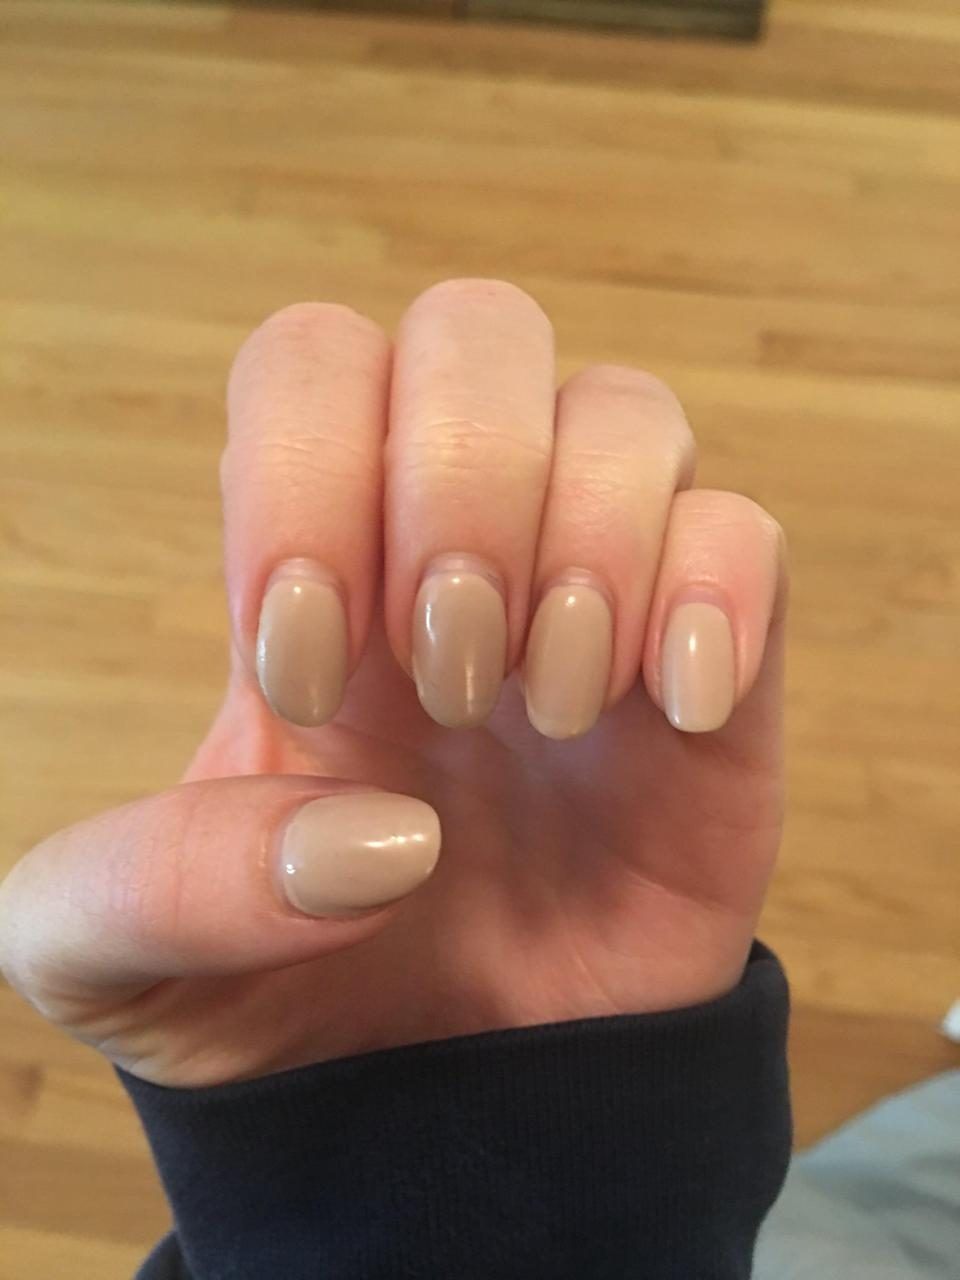 <p>Nary a chip in sight! This is two weeks (and one day) postmanicure. I'd been on vacation, in and out of a lake, and done multiple rounds of dishes. </p> <p>I'm never going to the salon again, y'all.</p>